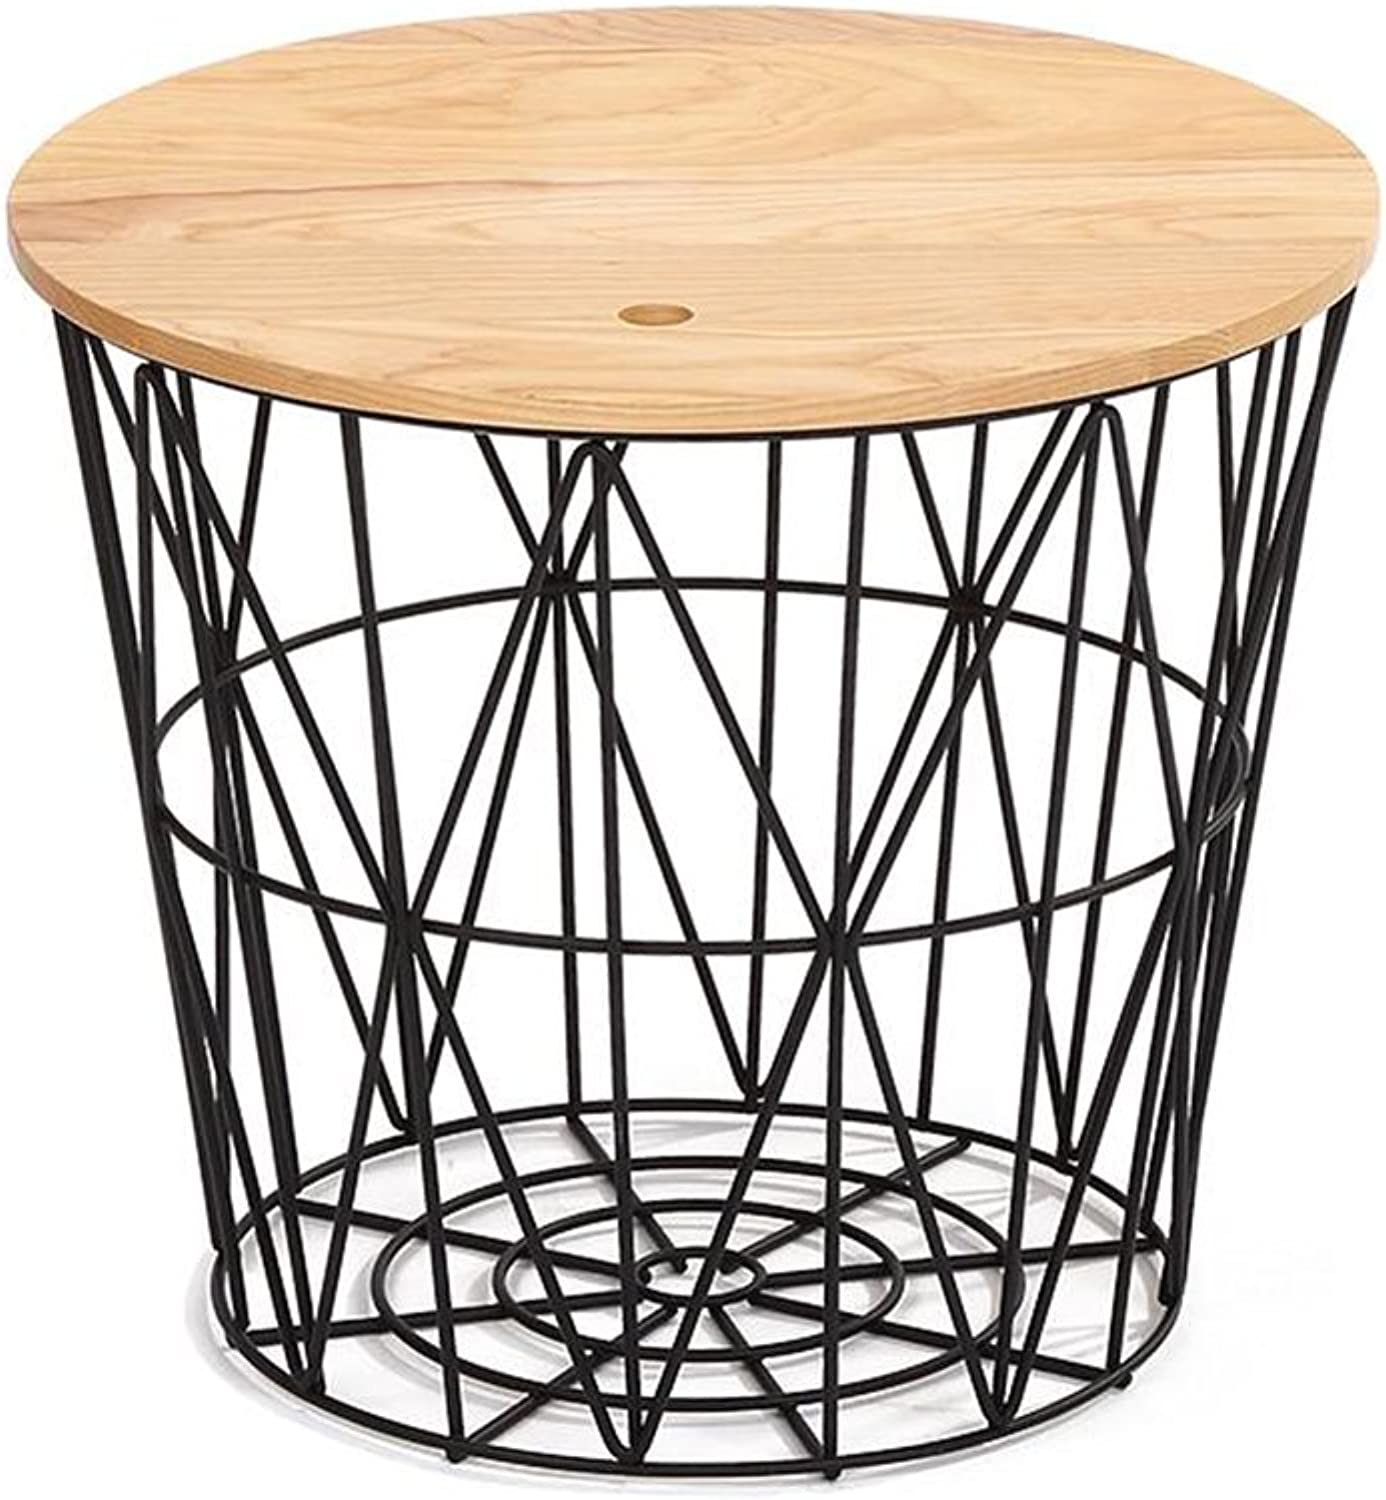 Coffee Table Sofa Side Table Modern Iron Round Table Bedside Table Corner (color   Black, Size   40  40  35cm)